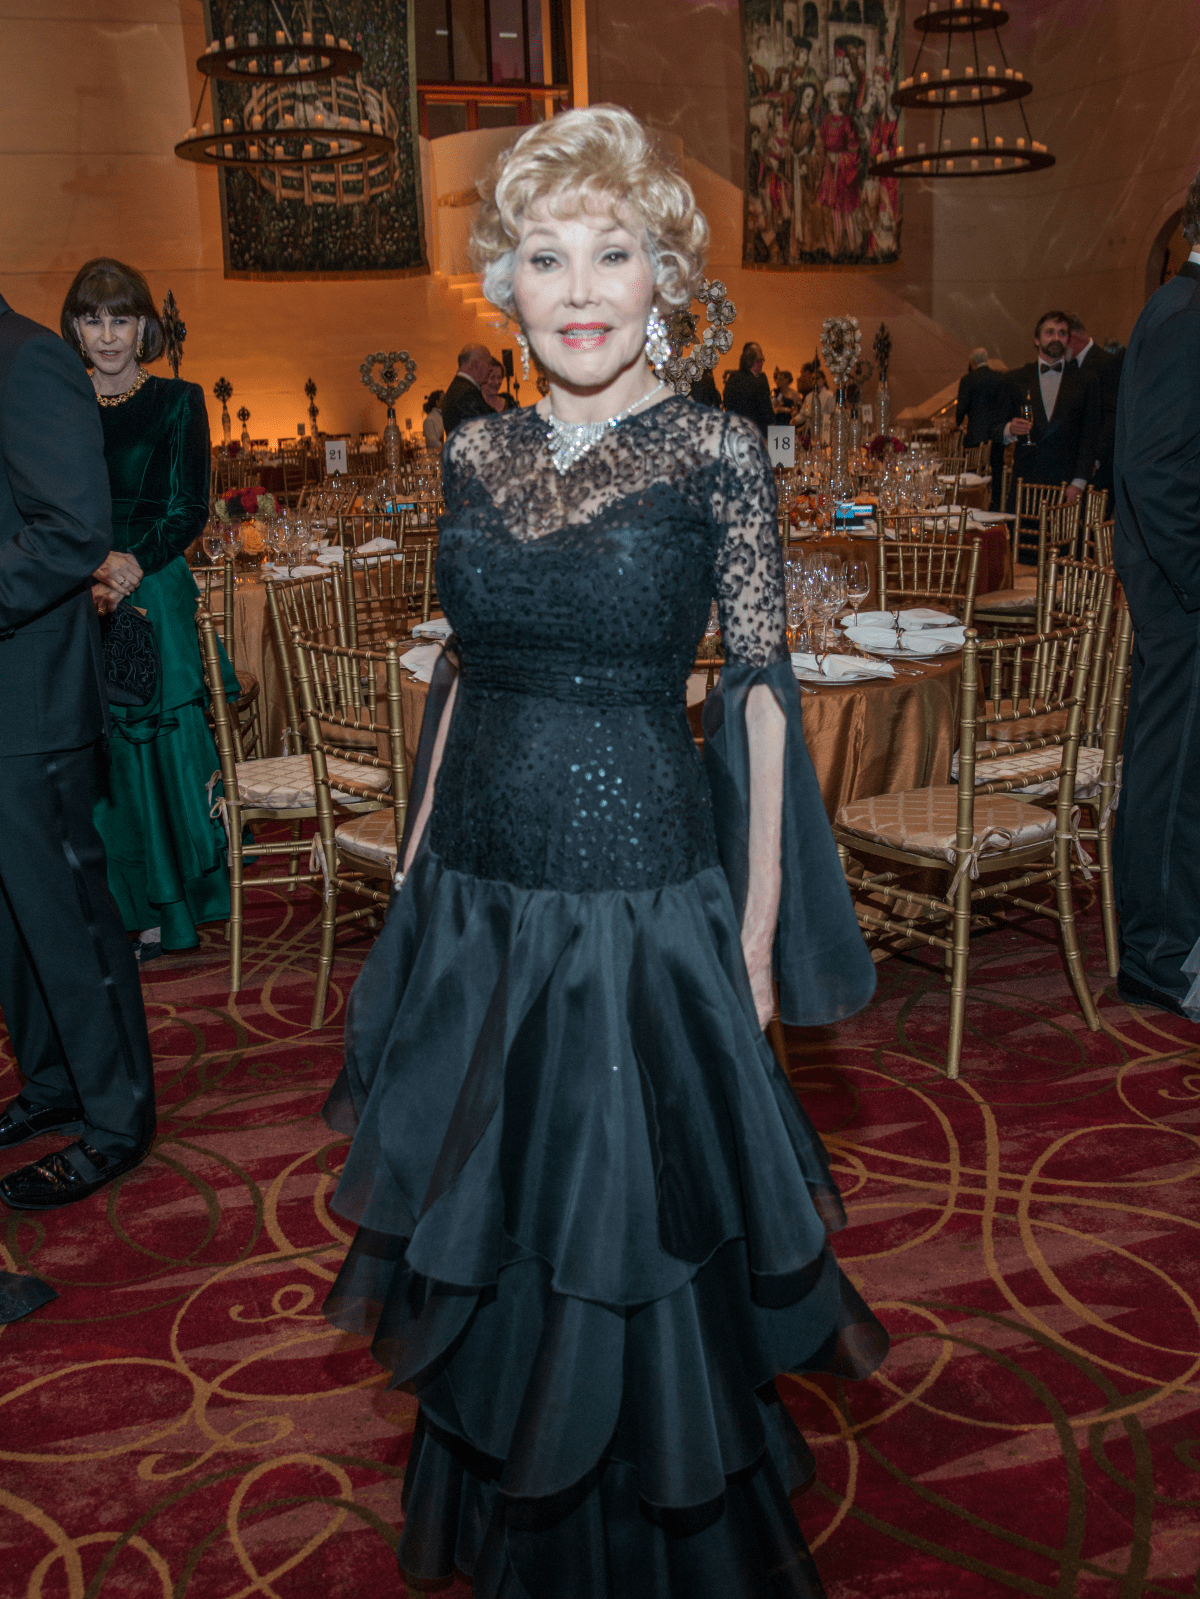 Houston, Ballet Ball gowns, Feb 2017, Joann King Herring in vintage Pierre Cardin